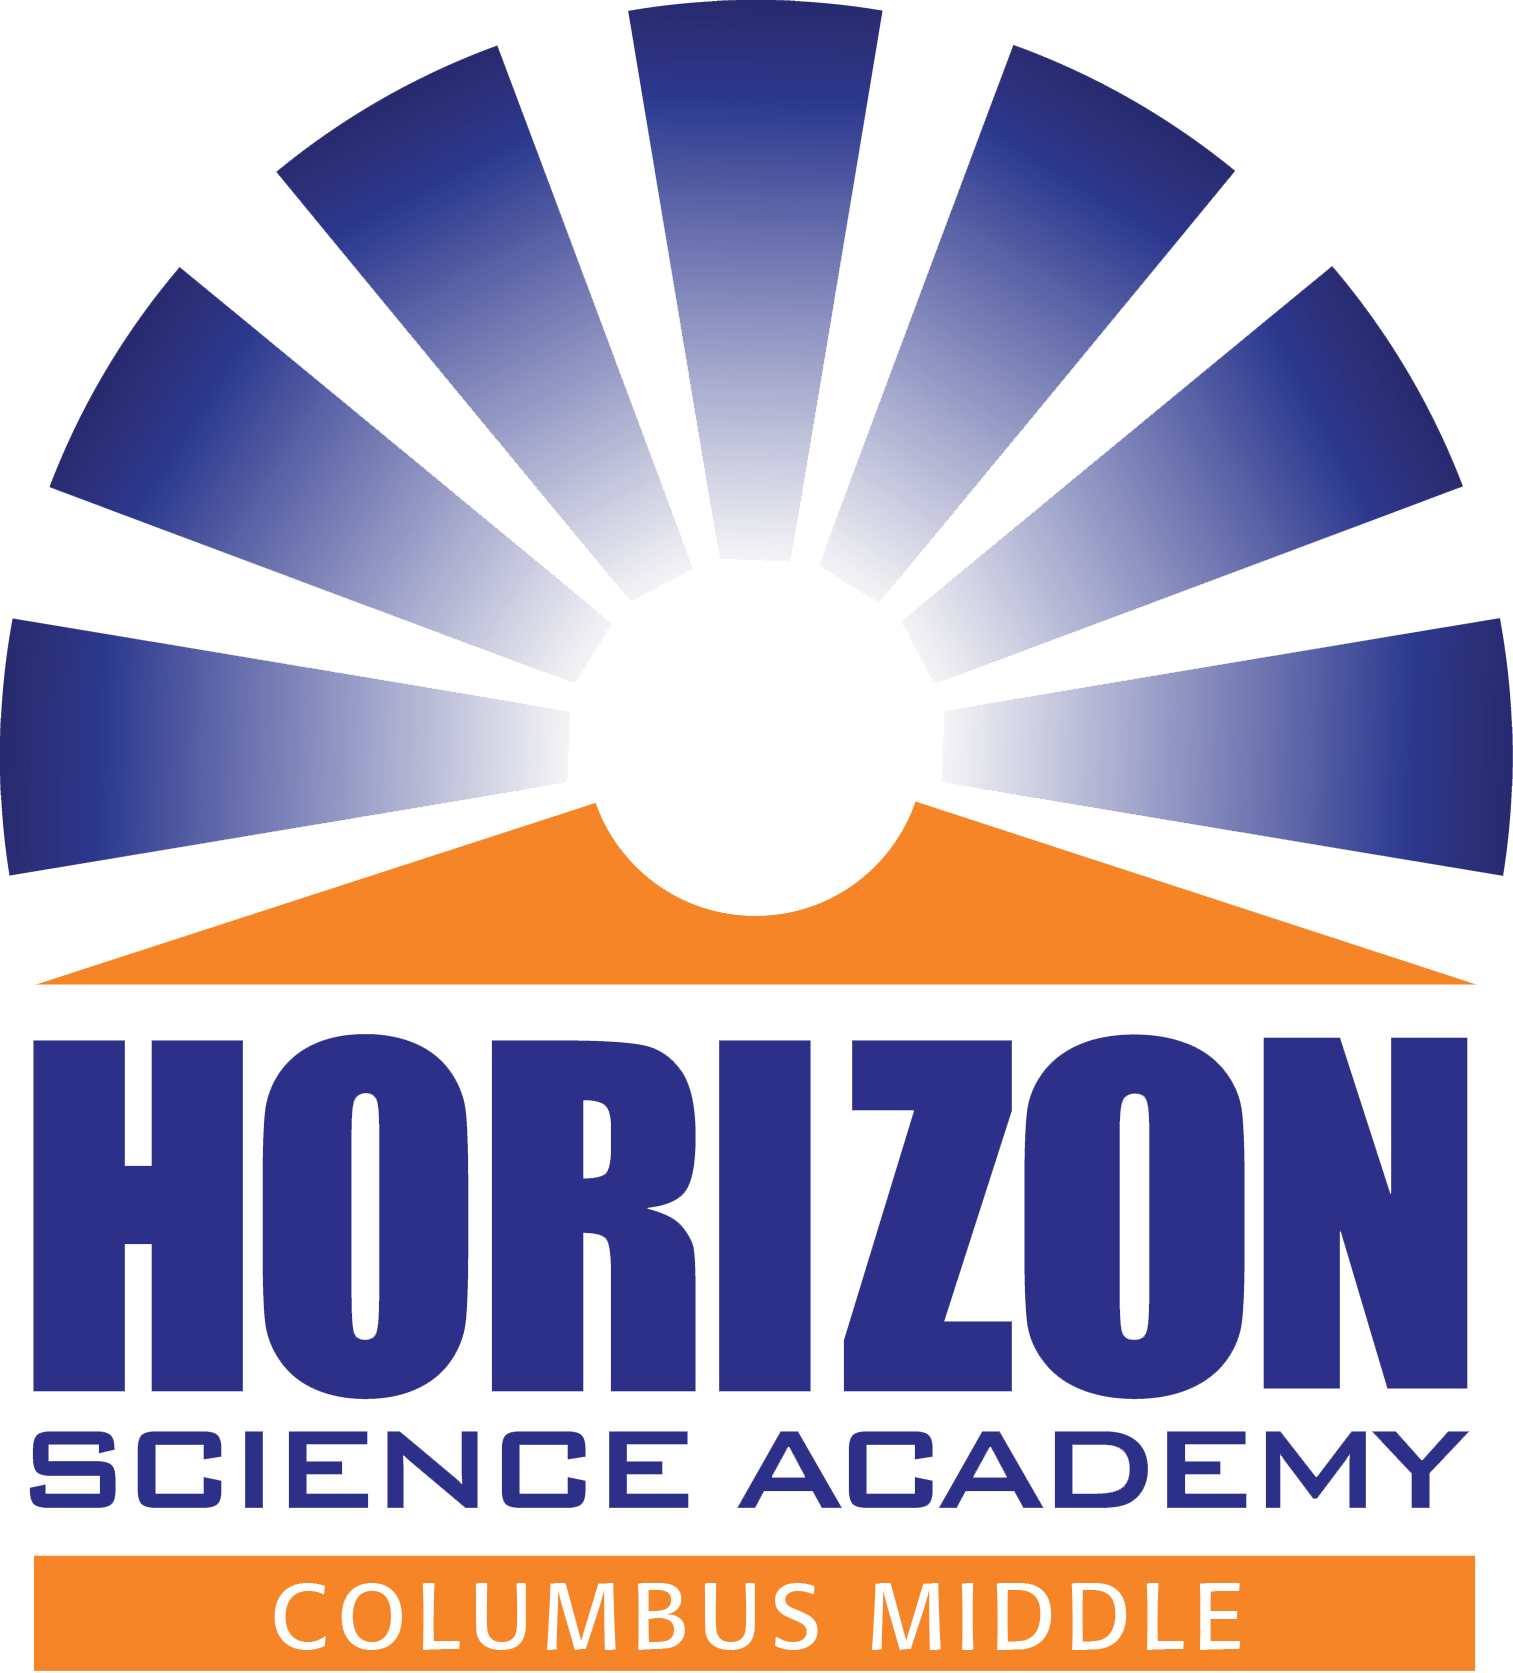 language arts education horizon science academy logo